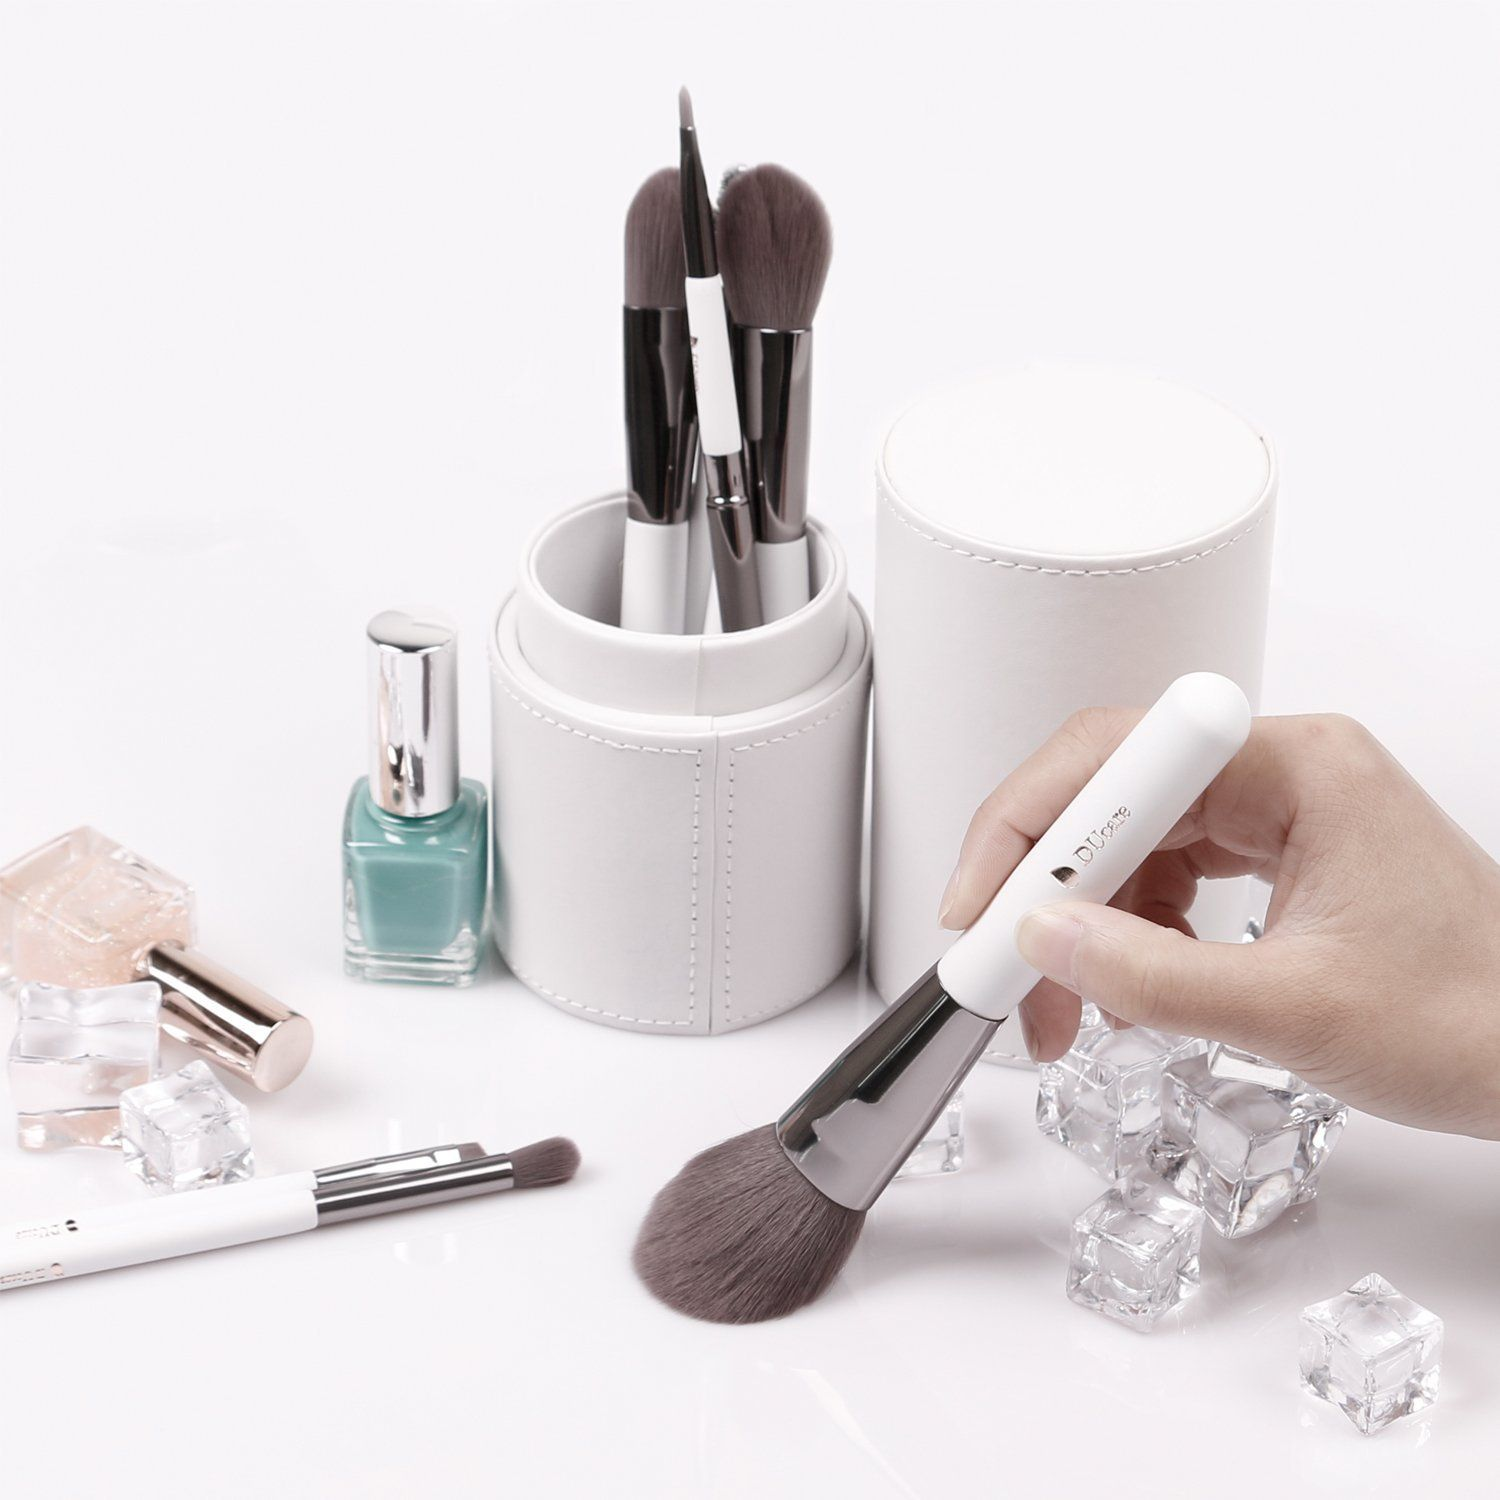 DUcare 8Pcs Make Up Brushes Sets Professional Cosmetic